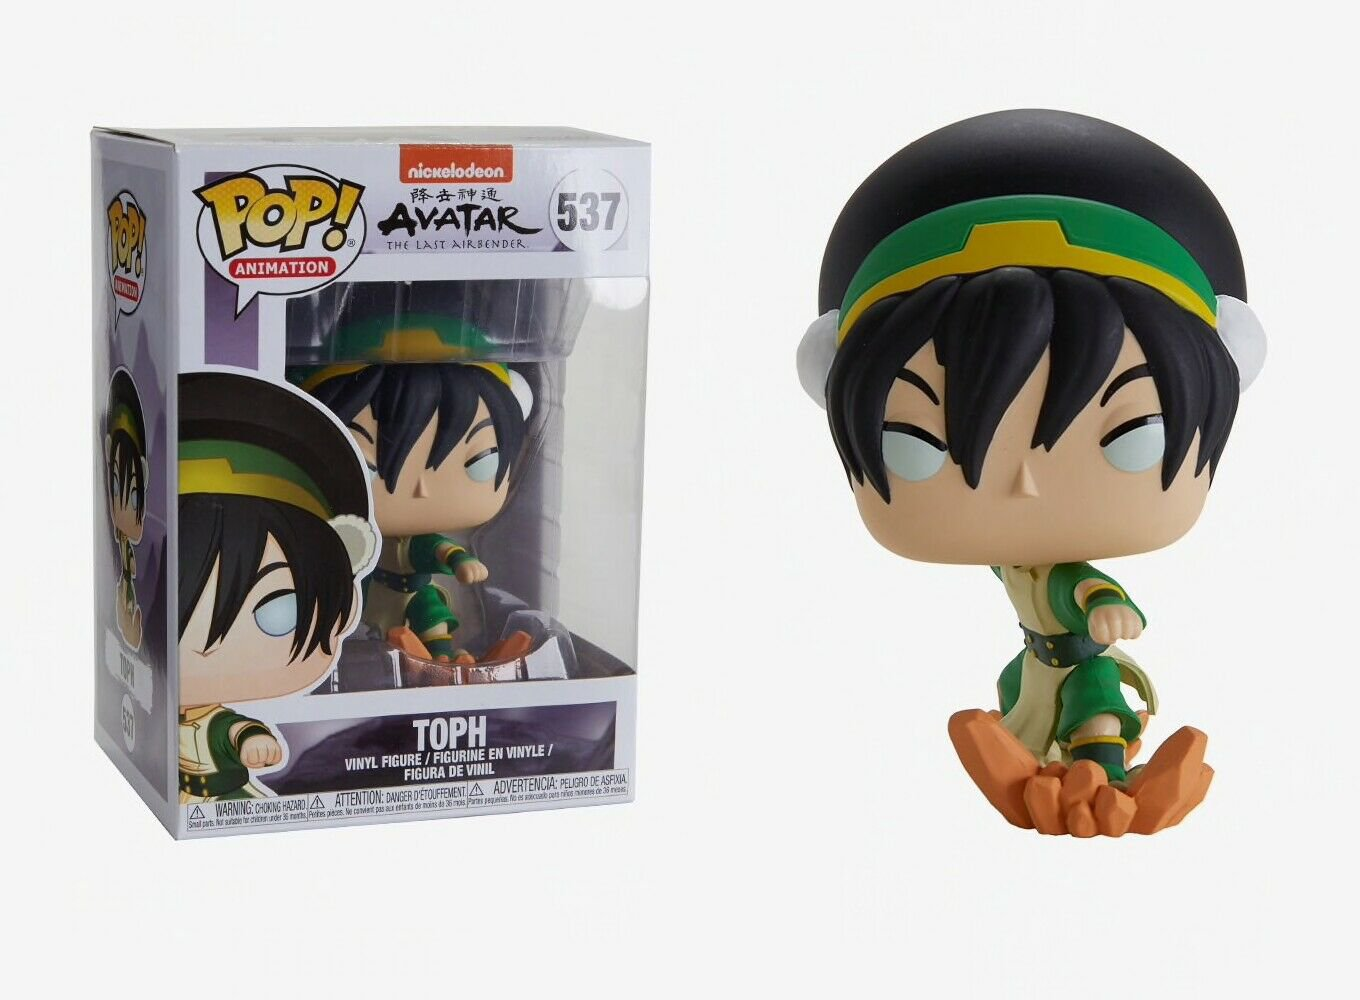 HOT SELLER Funko Pop Animation: Avatar the Last Airbender - Toph Vinyl Figure Item